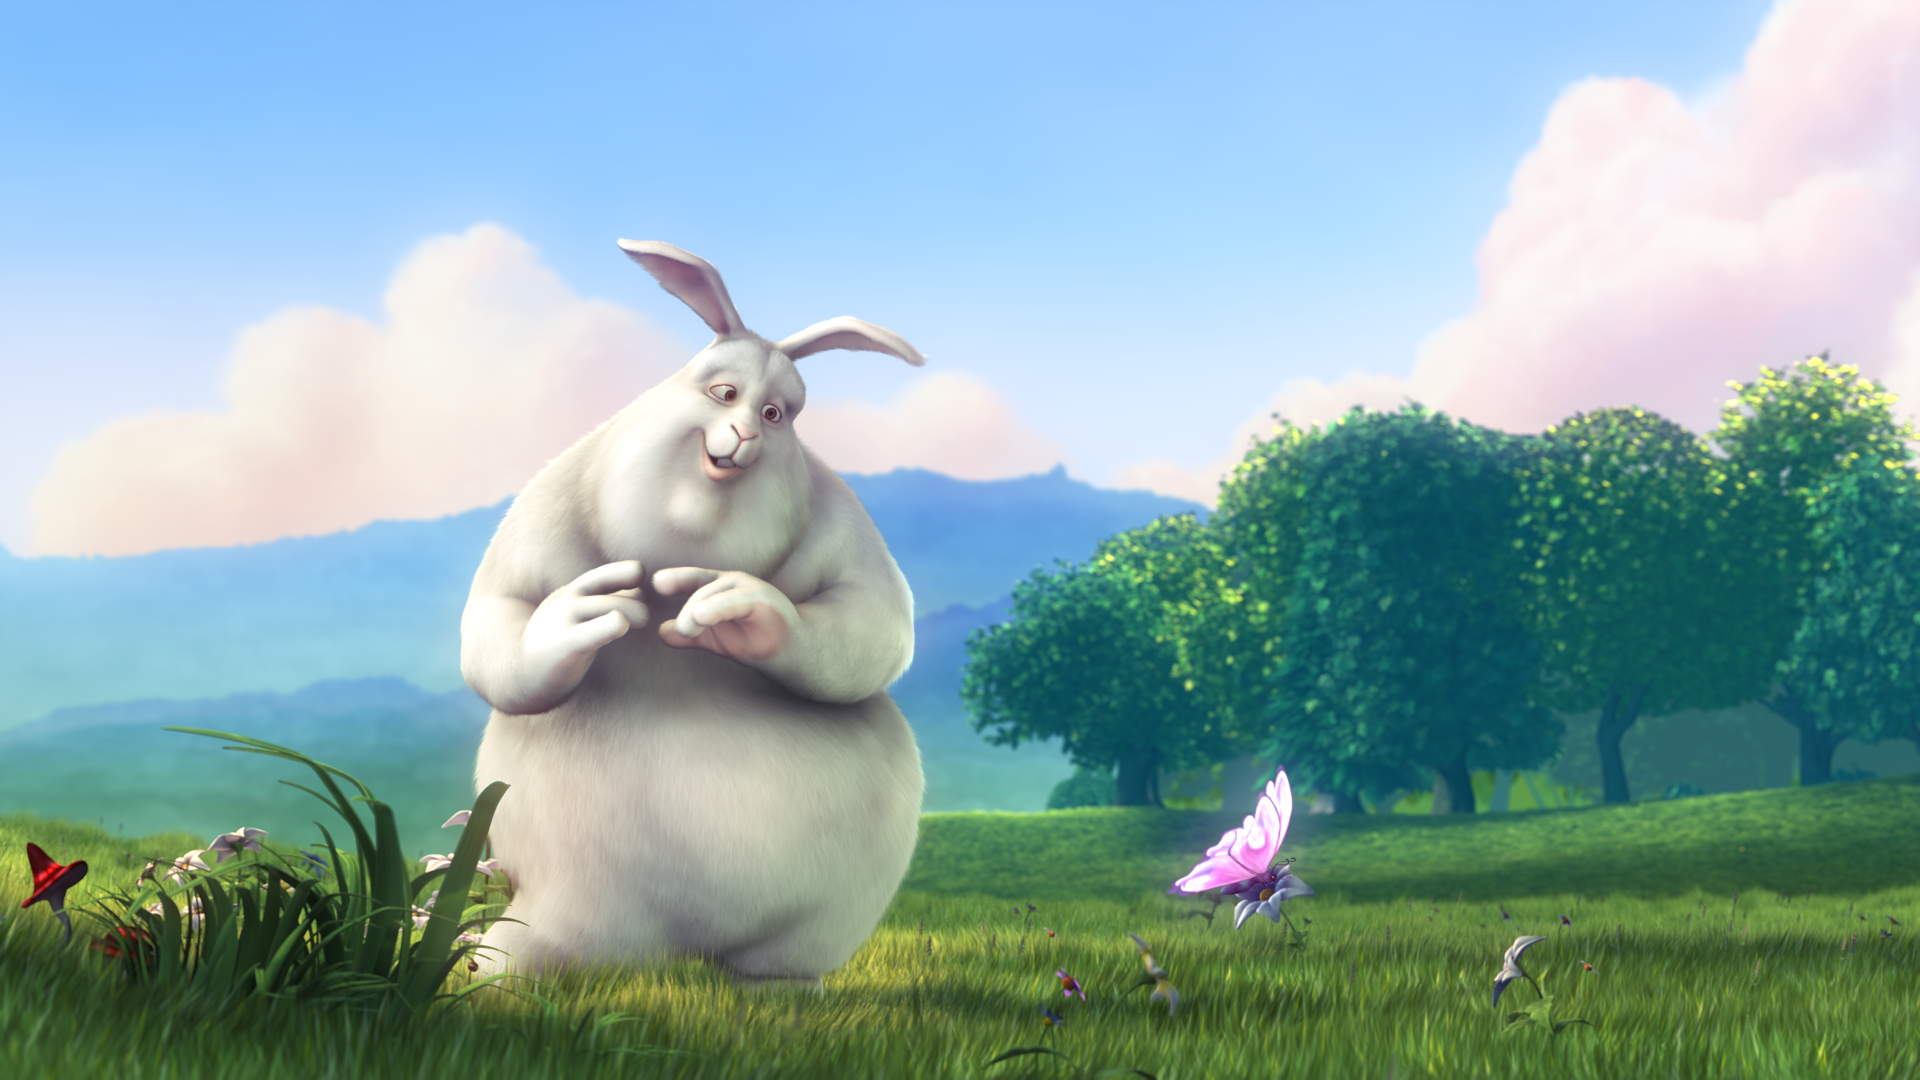 screenshot 1 Big Buck Bunny content image